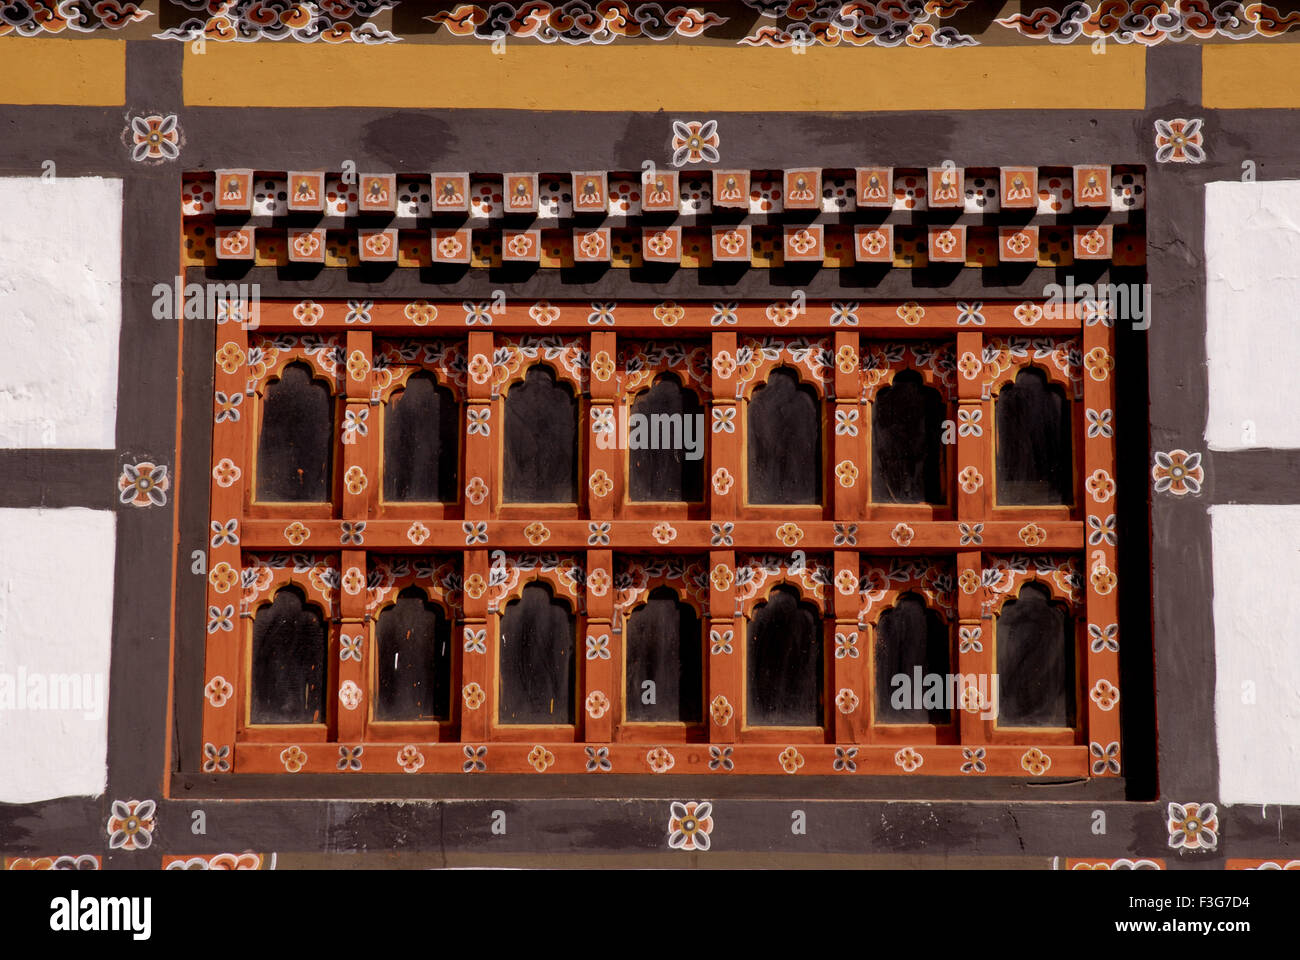 Decorative window of Bank of Bhutan Thimpu Br at Capital city Thimpu Royal Govt of Bhutan - Stock Image